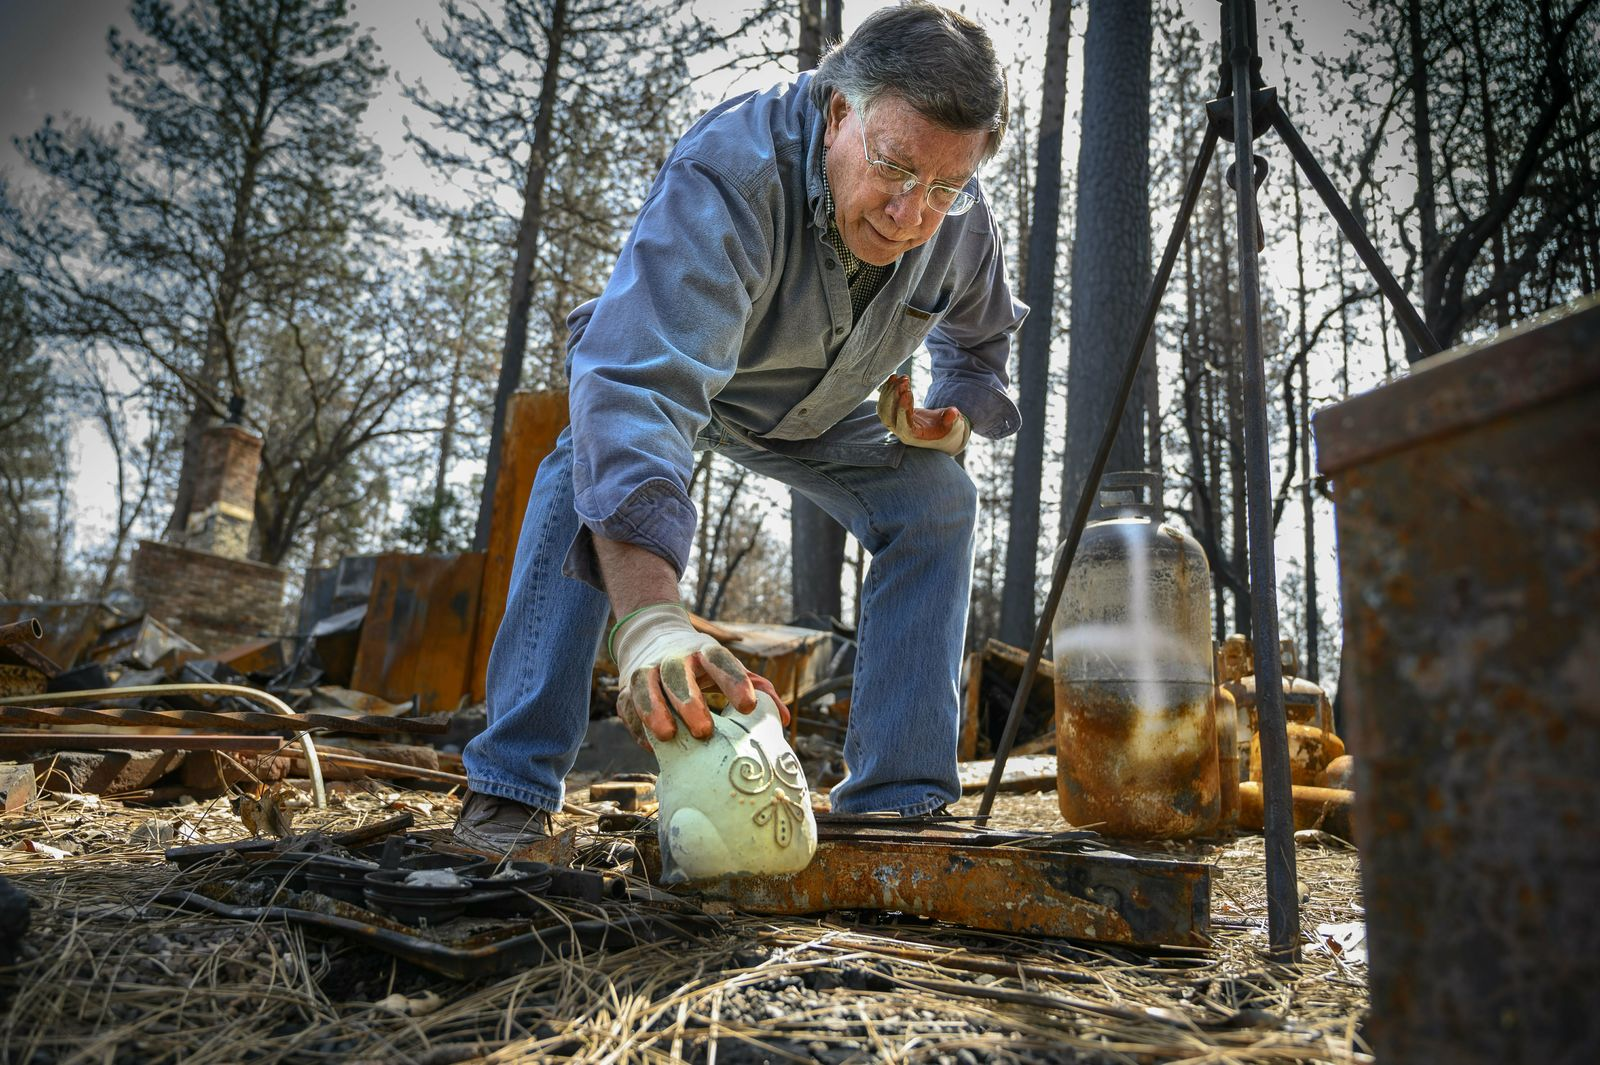 In this March 24, 2019, photo, Gene Mapa collects metal and ceramic objects that didn't burn in the Camp Fire at his house in Paradise, Calif. Mapa now lives in Colfax, which as a similar level of fire risk. (Hector Amezcua/The Sacramento Bee via AP)